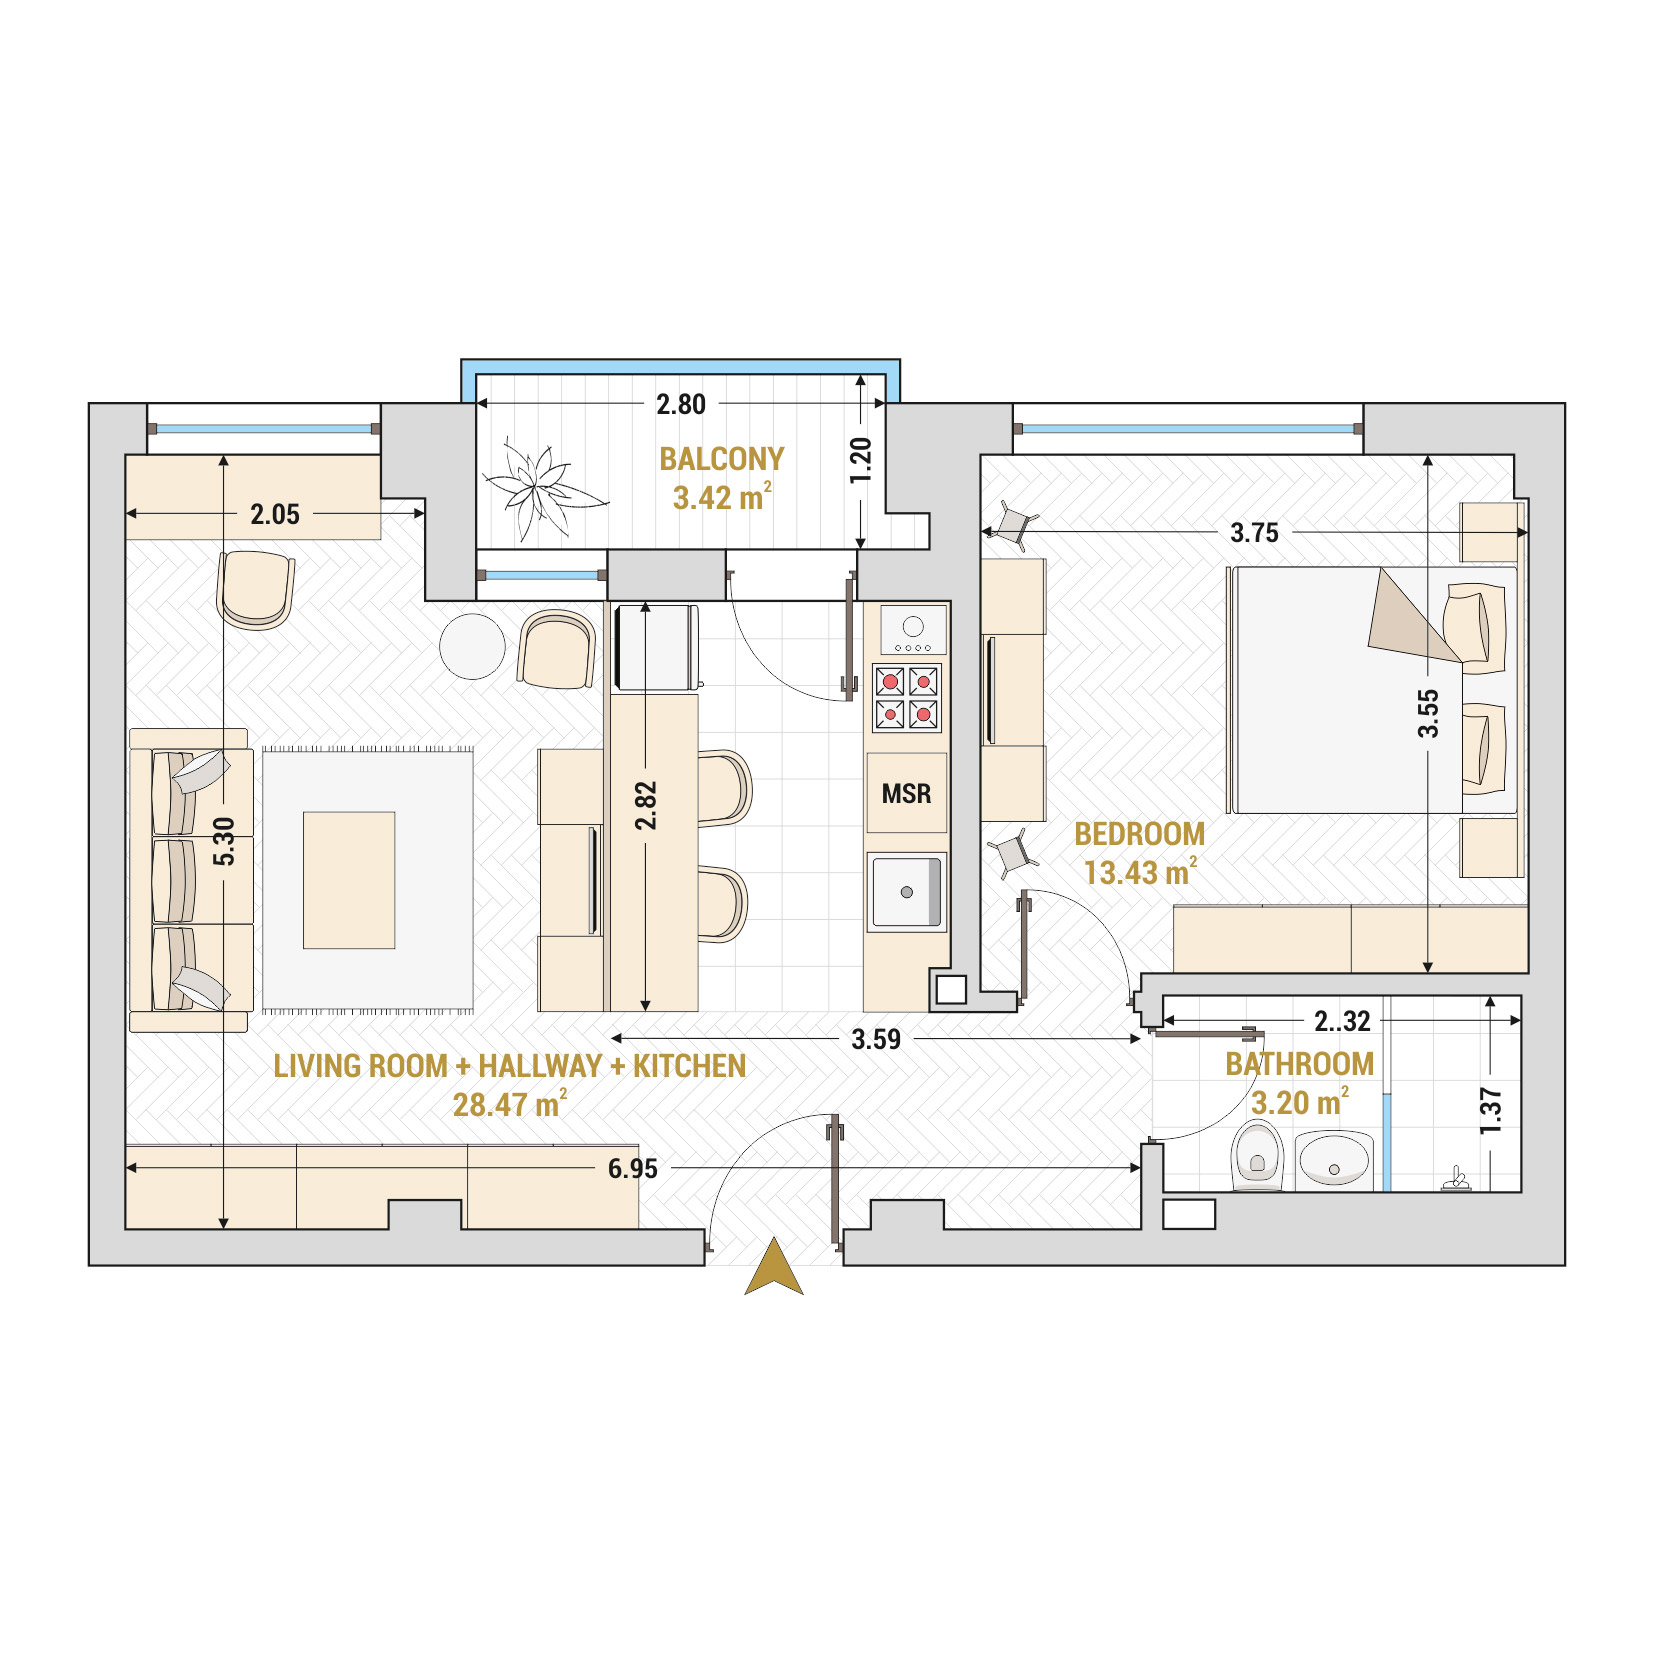 Catedral Residence - 2 Room Apartment for Sale - Bucharest - Romania - Type 1 – S1A